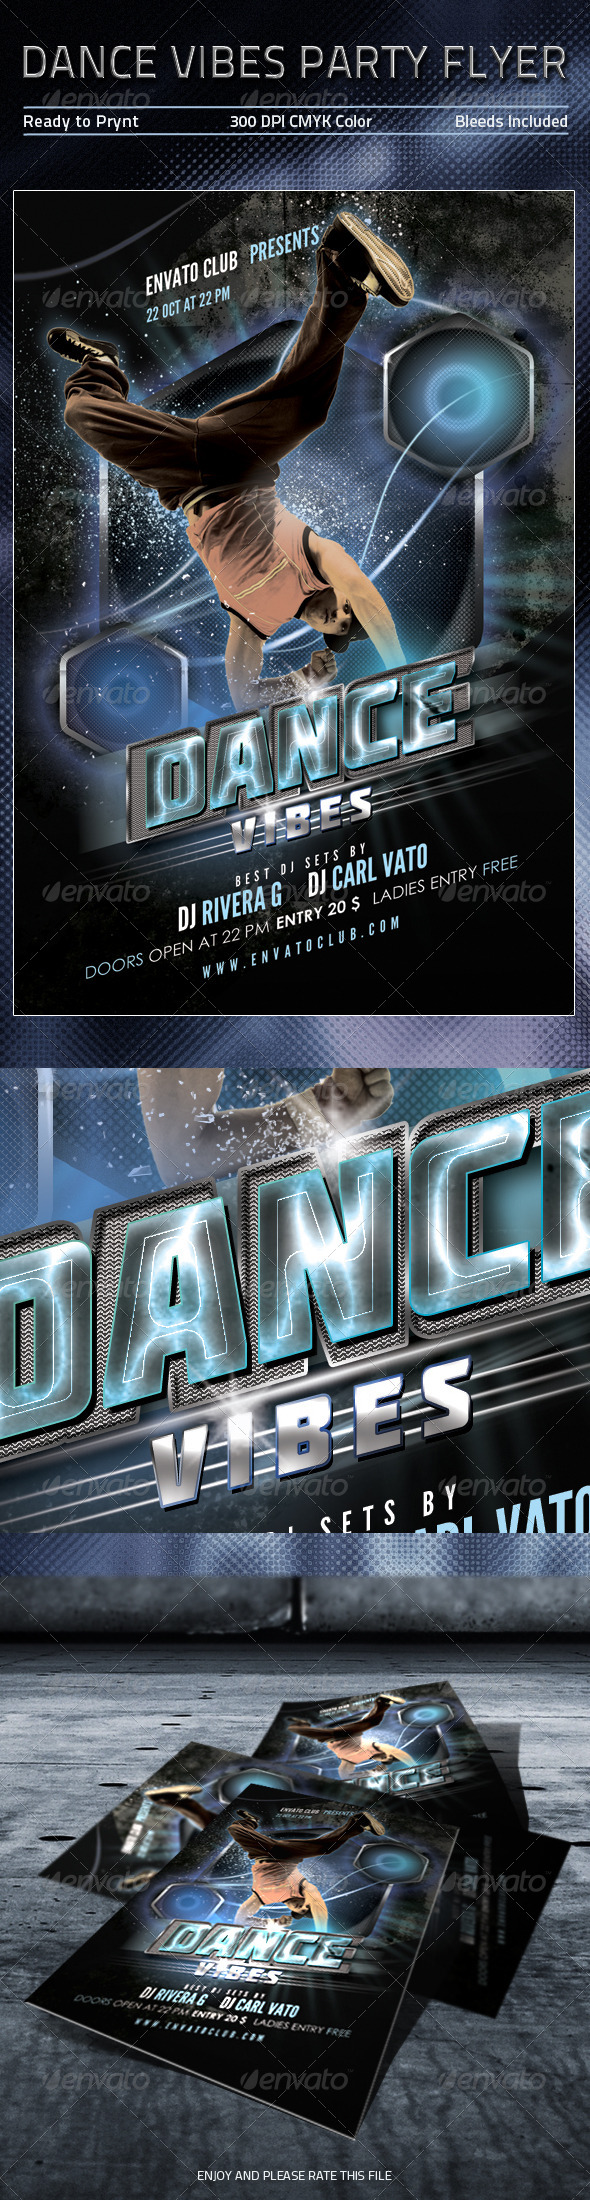 Dance Vibes Party Flyer